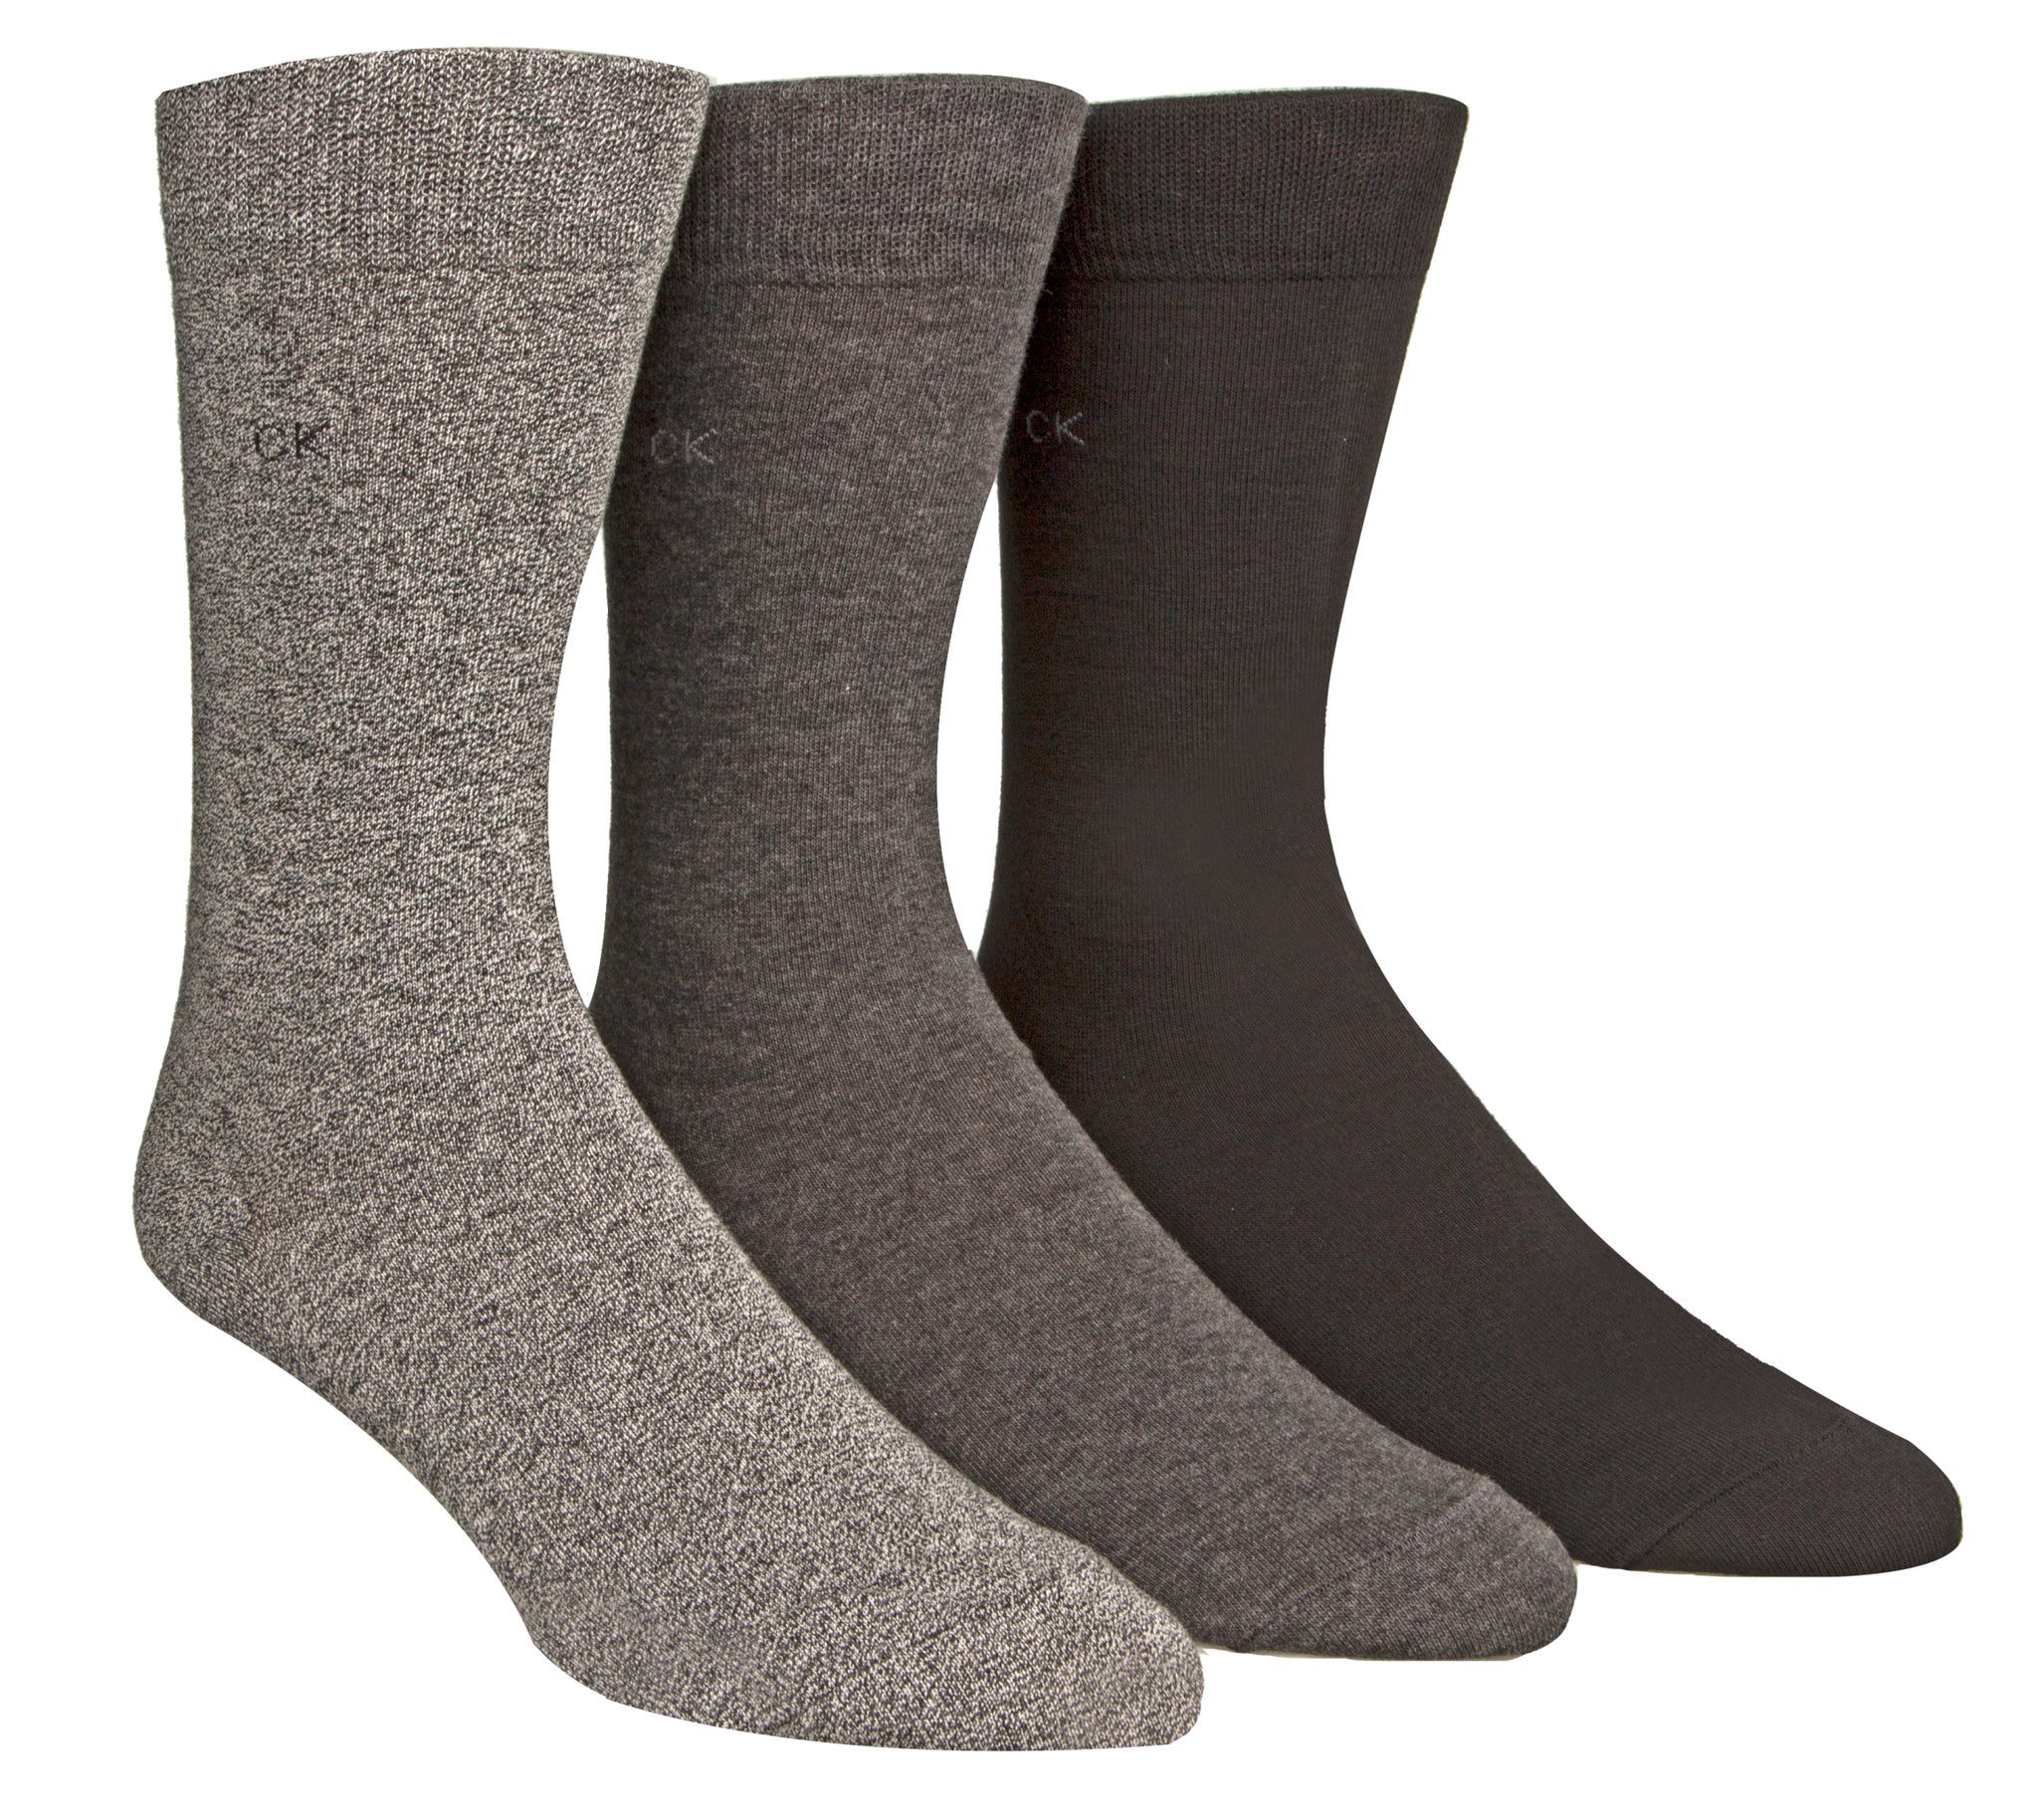 MCGREGOR MENS CALVIN KLIEN 3PK ASSORTED DRESS SOCK